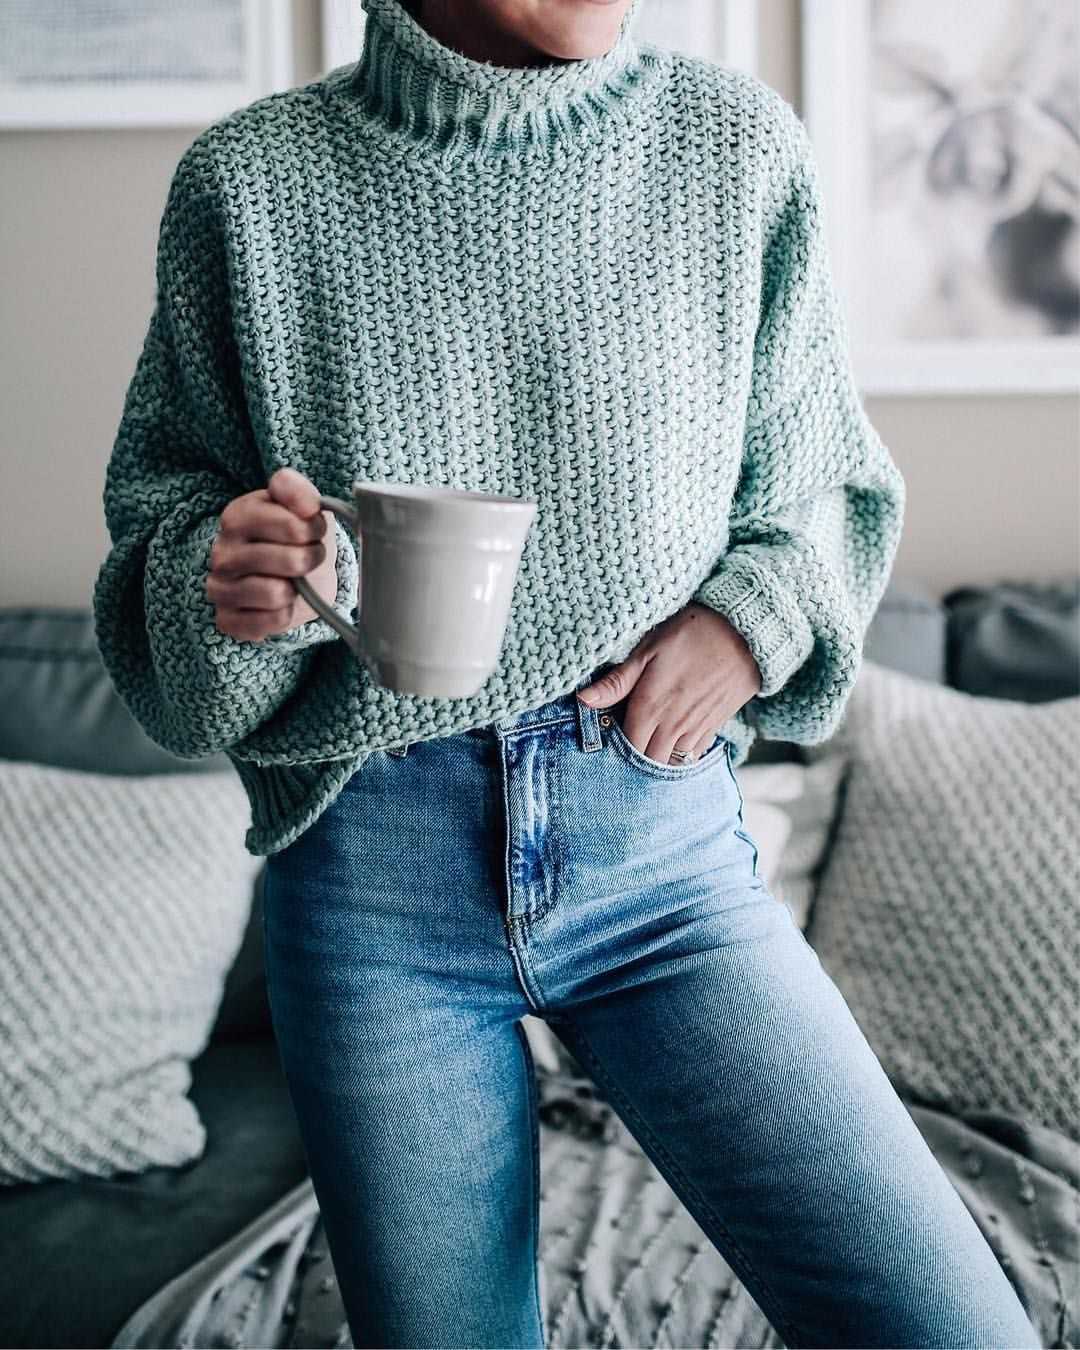 Jeans Winter Outfits Ideas